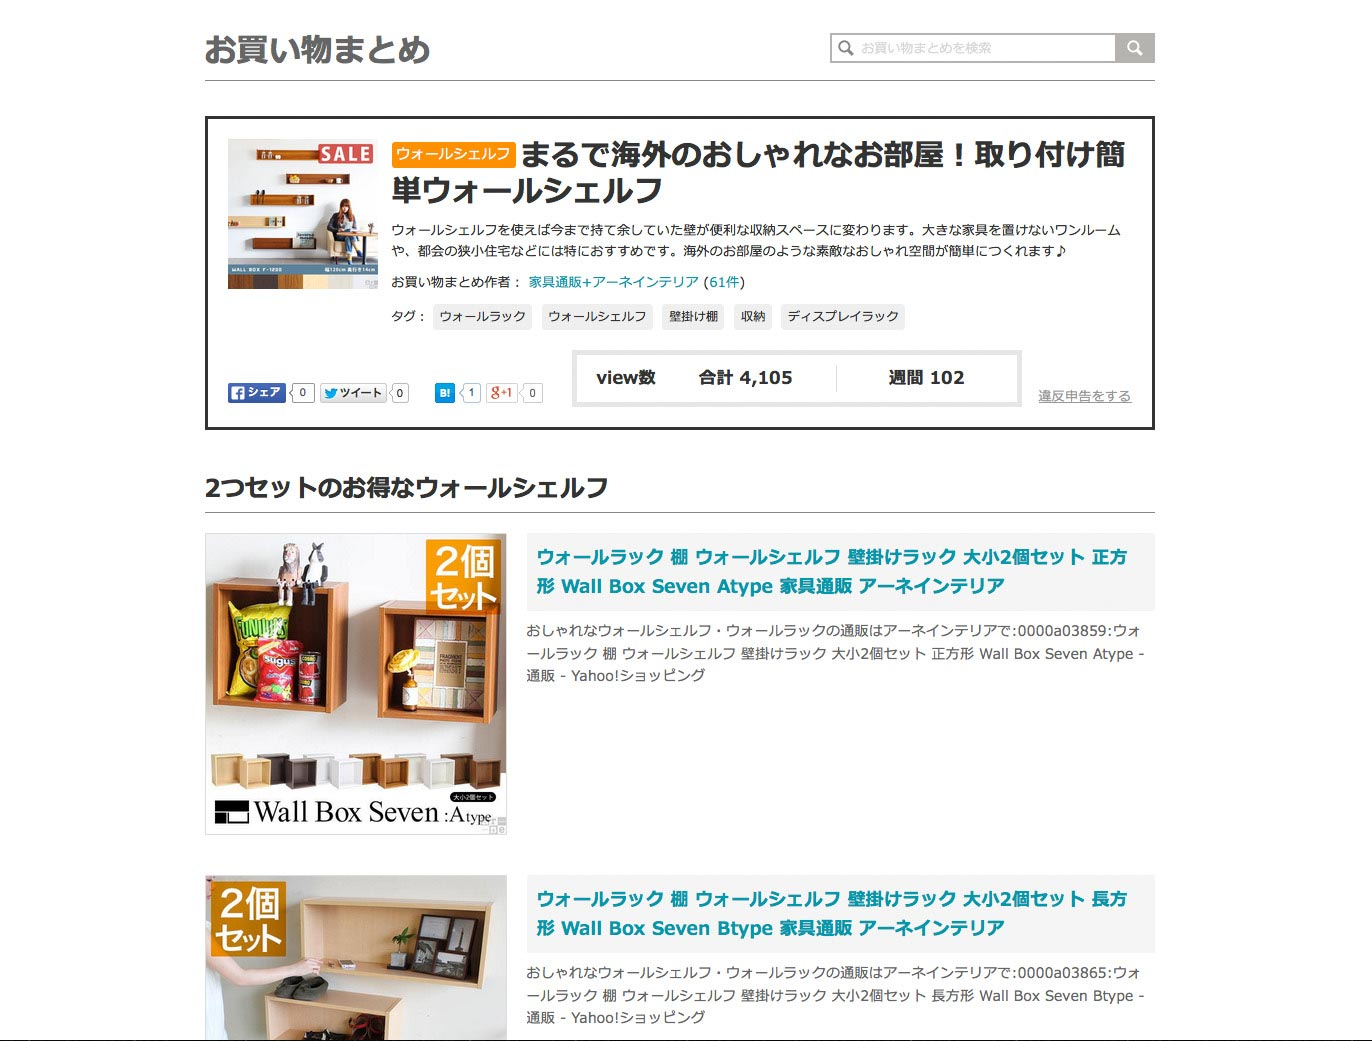 http://shopping.yahoo.co.jp/category/2506/3664/15836/list/5873/matome